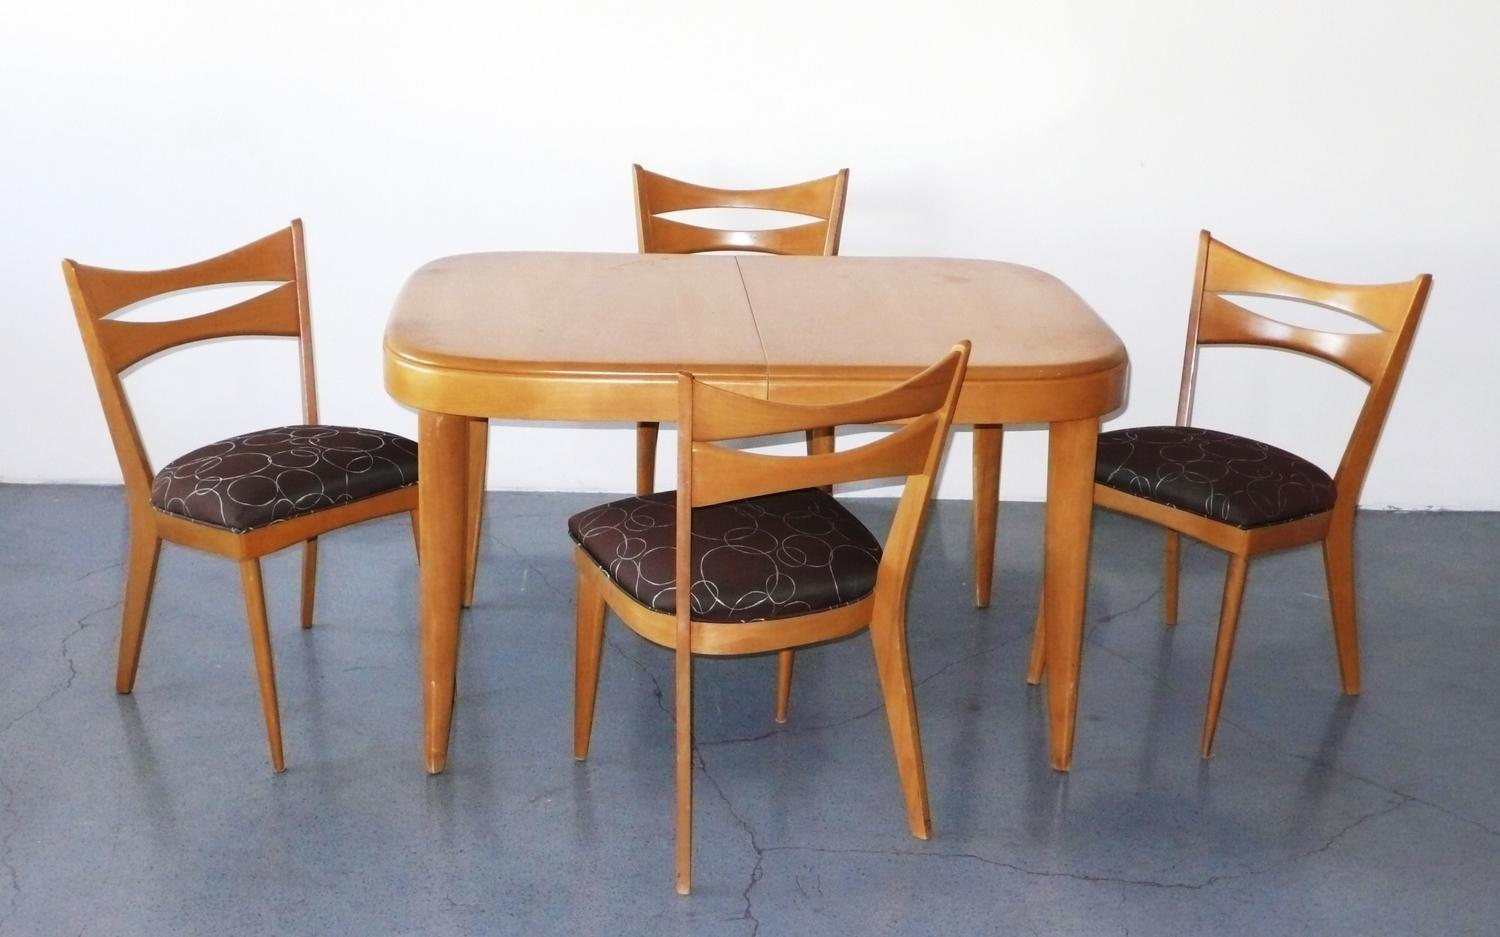 Heywood Wakefield Dining Chairs Heywood Wakefield Dining Set With 4 Chairs C 1950